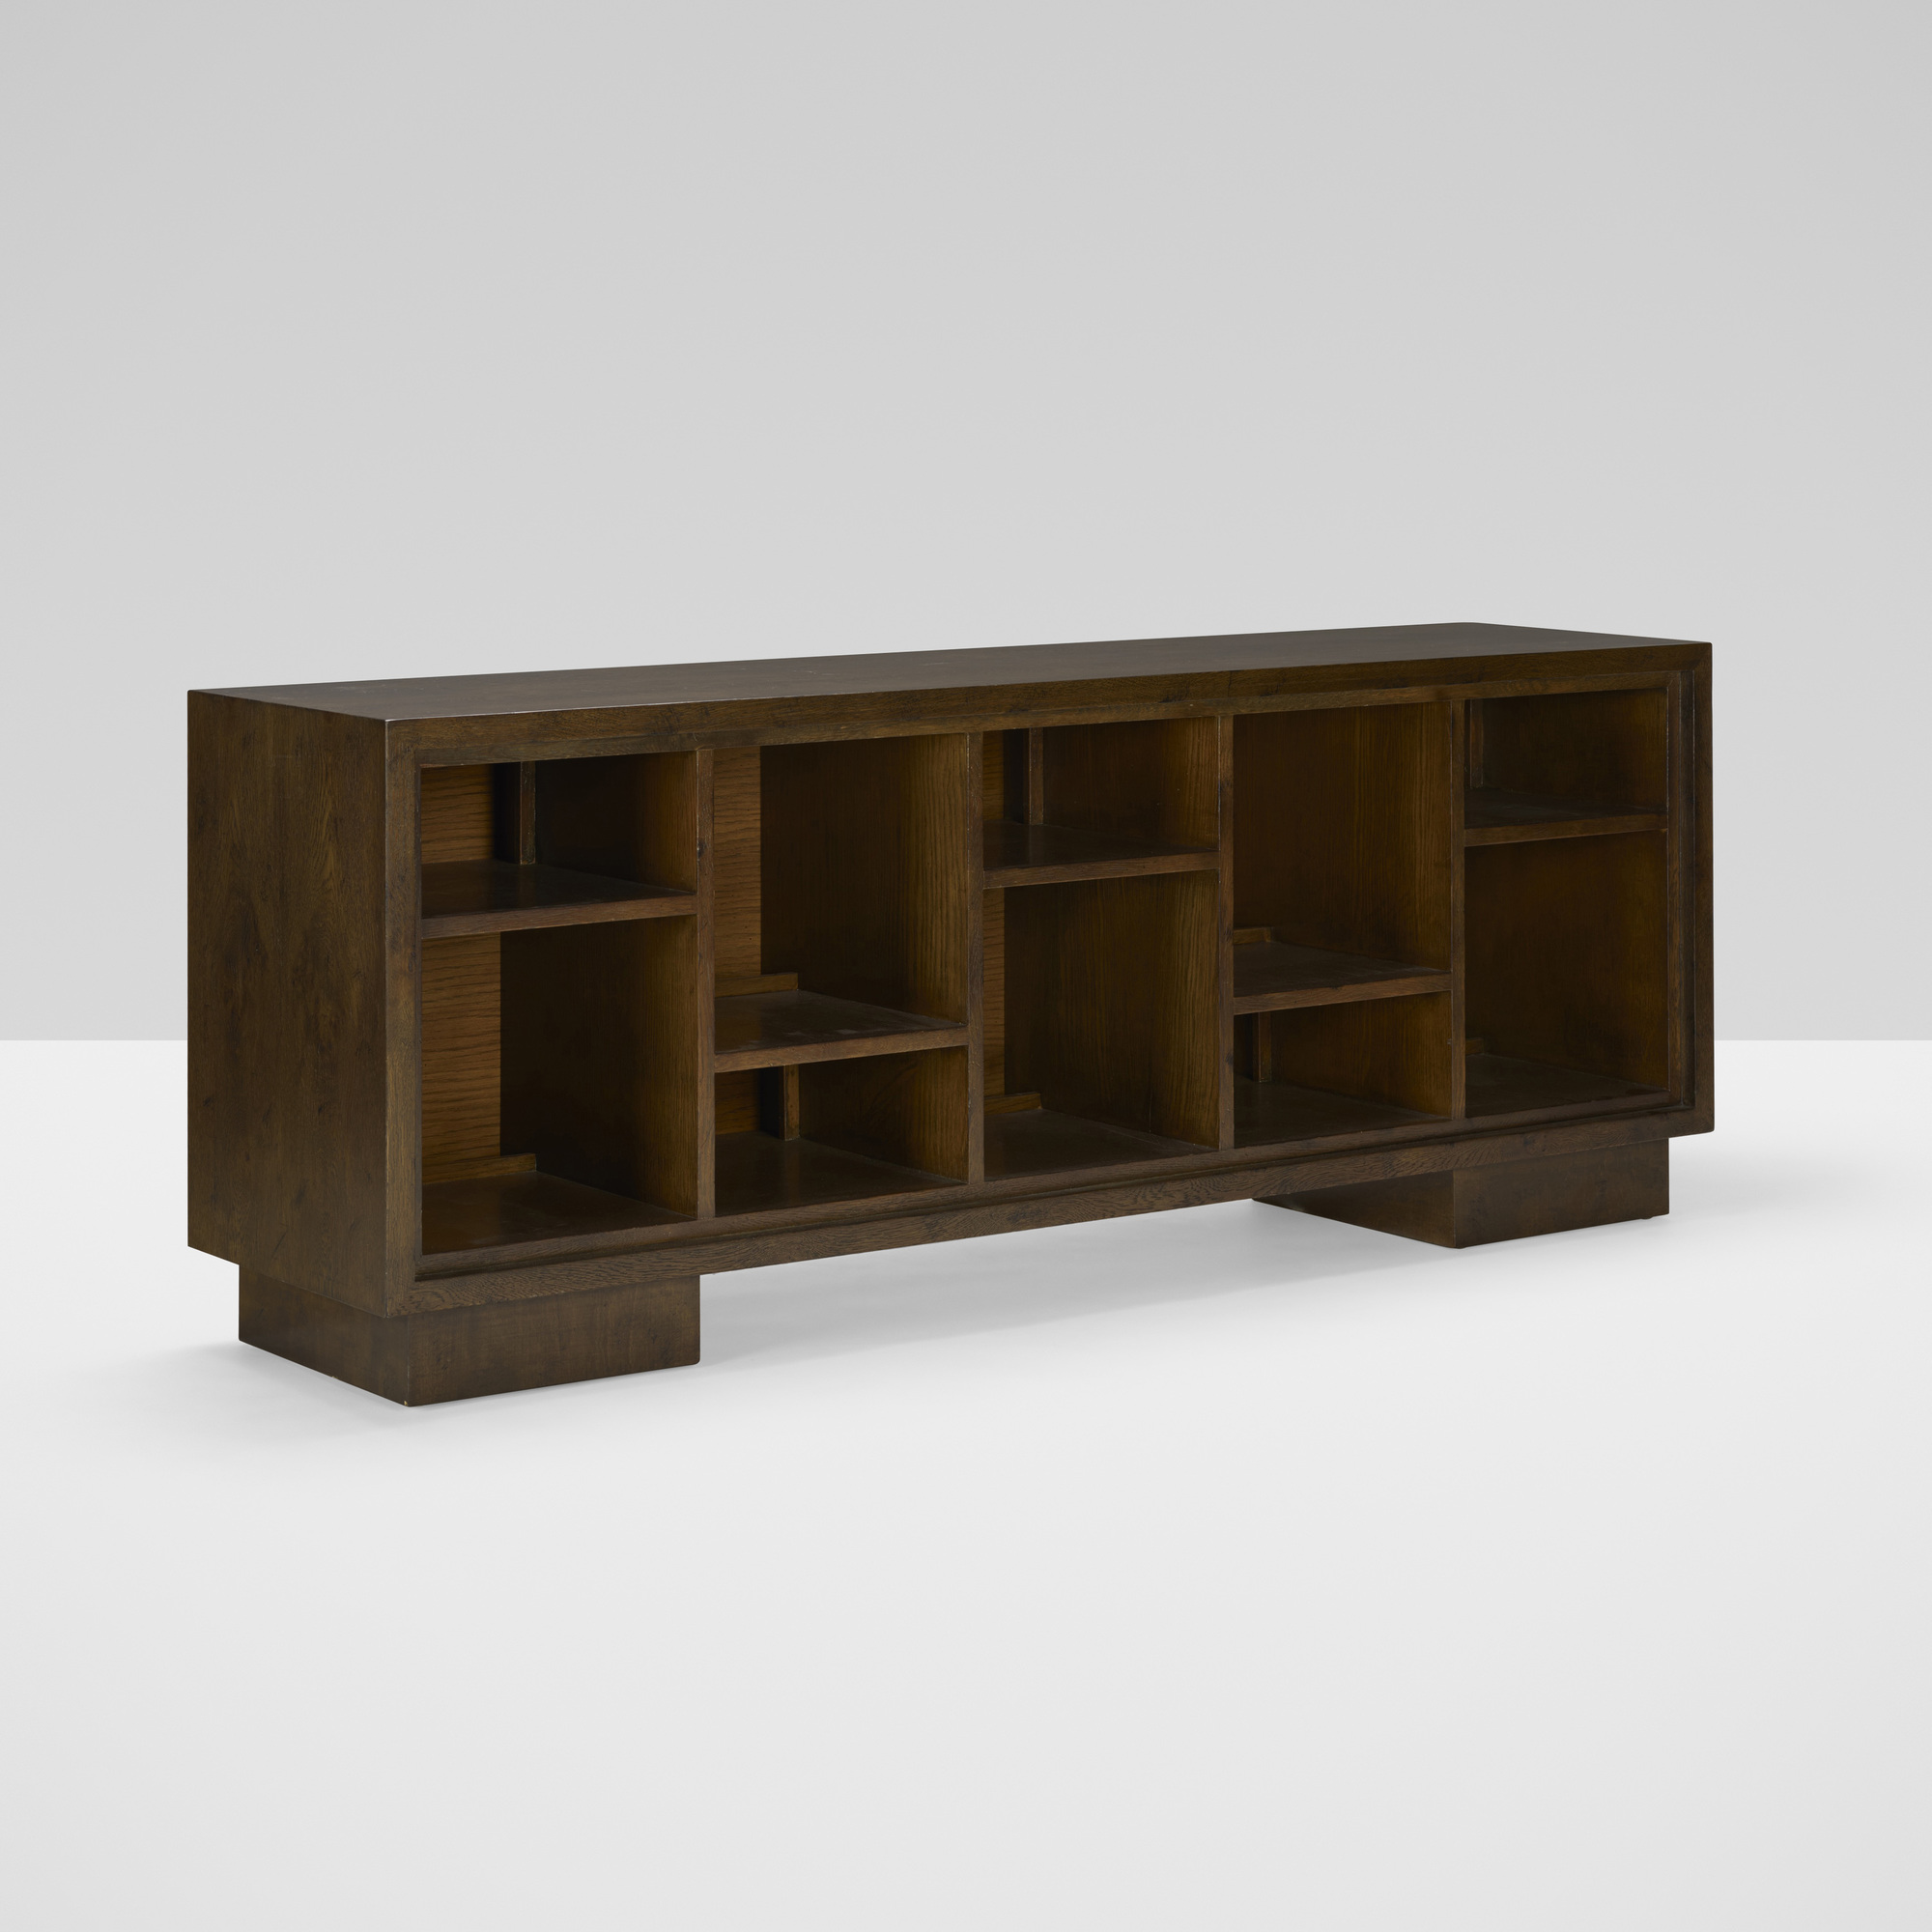 203: Samuel Marx / bookcase from the Morton D. May House (2 of 2)